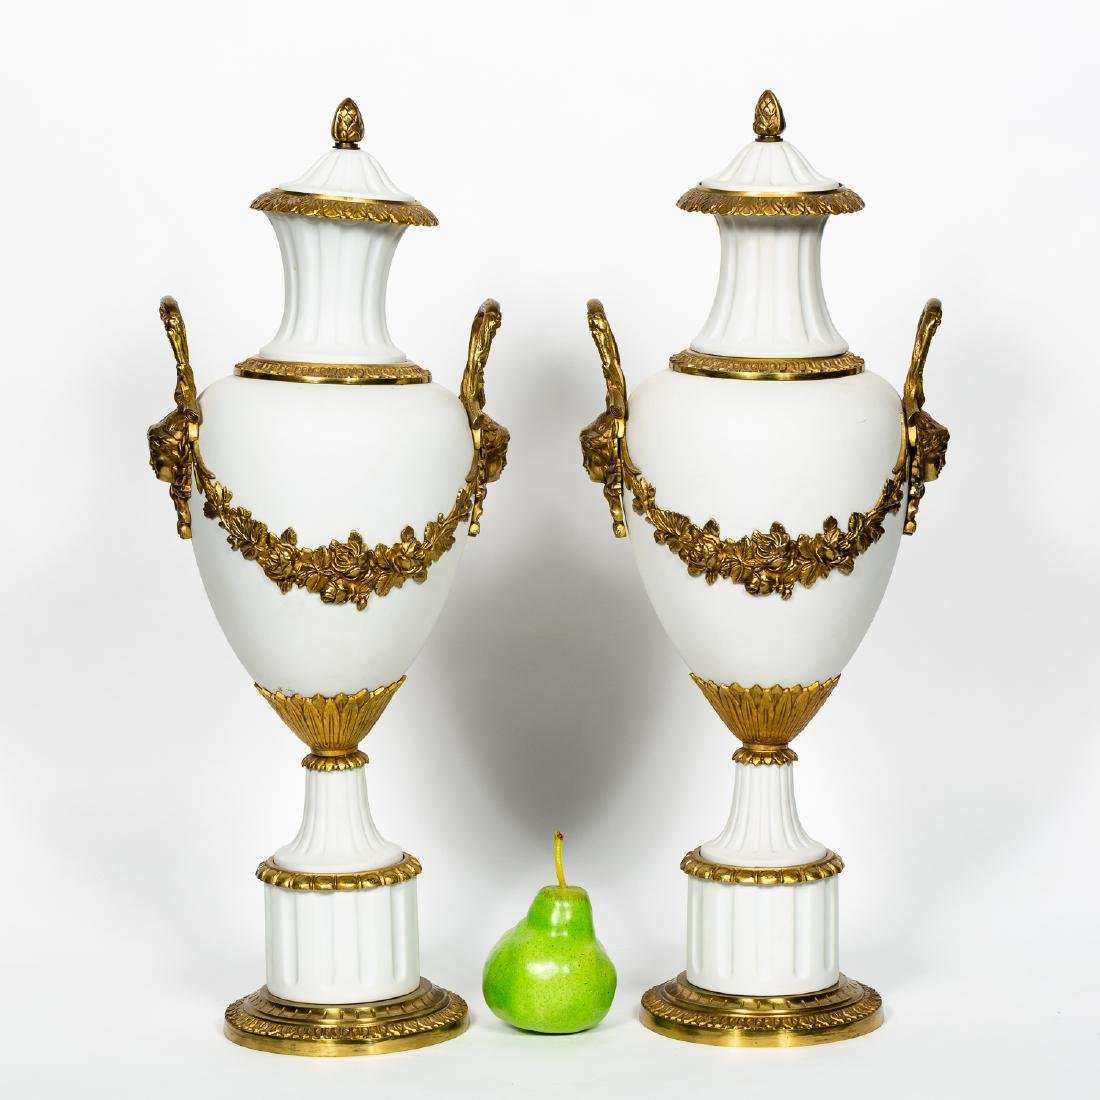 Pair of Neoclassical Bisque & Brass Accented Urns - 2